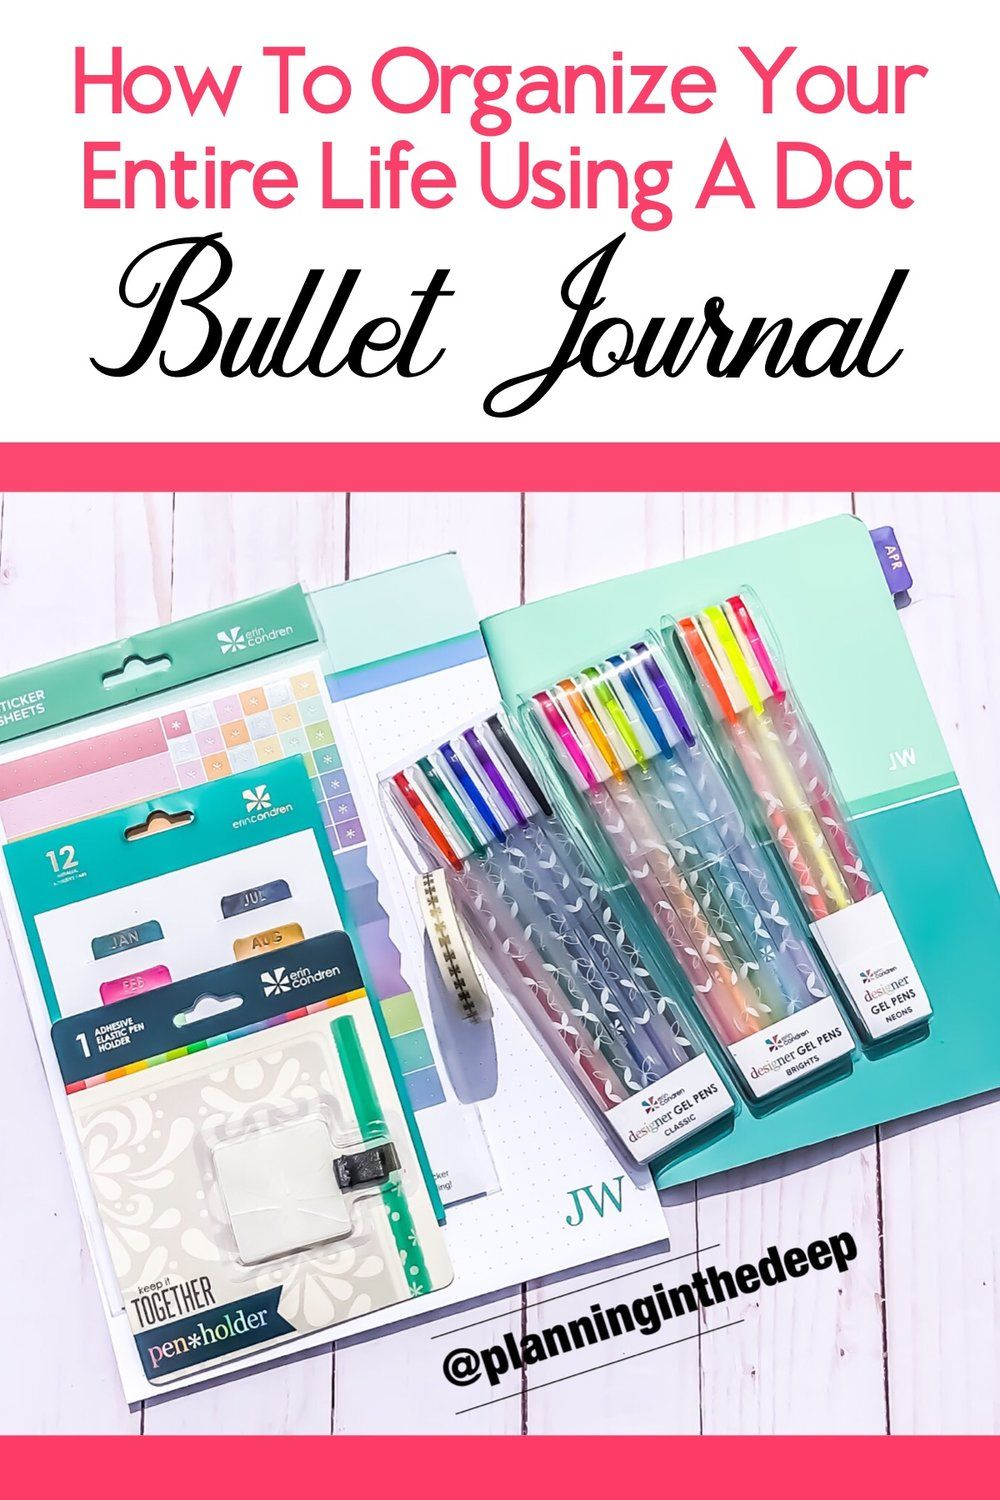 8 Ways To Bullet Journal With The Erin Condren Dot Grid